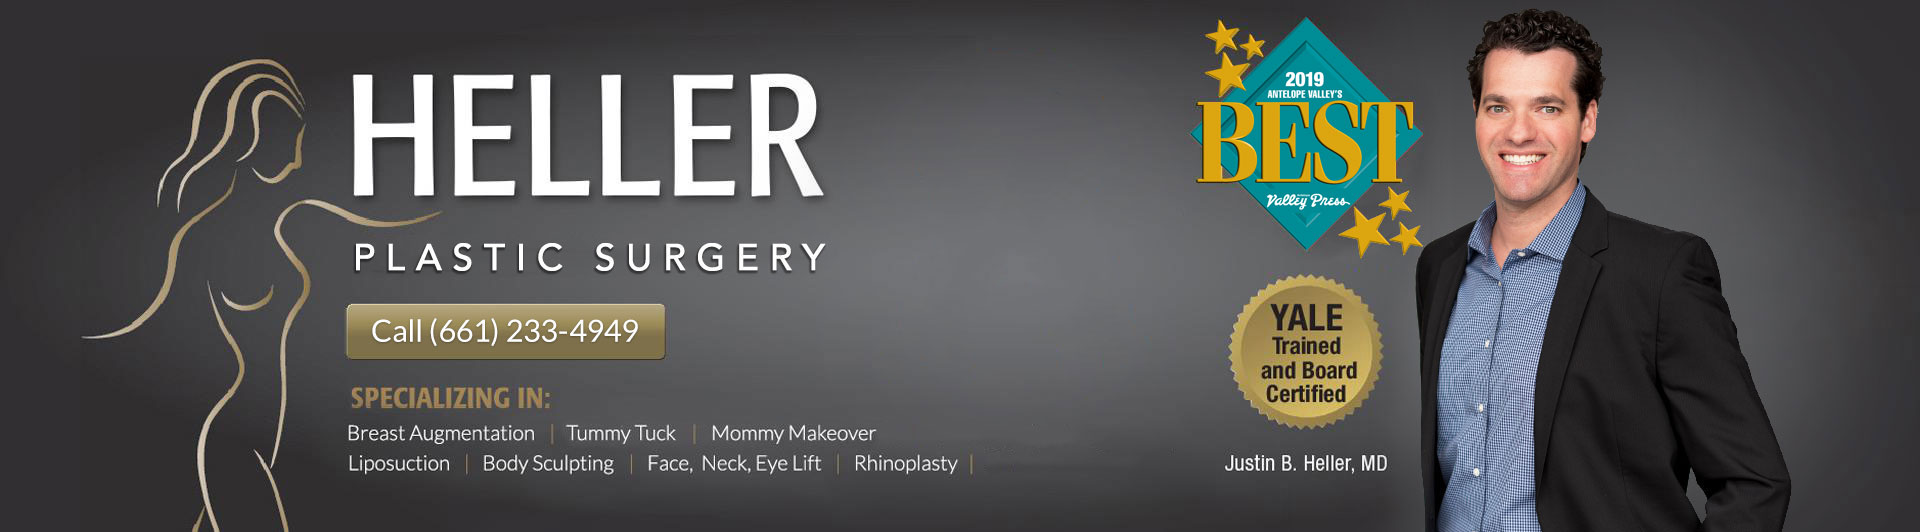 Heller-Plastic-Surgery-Hero